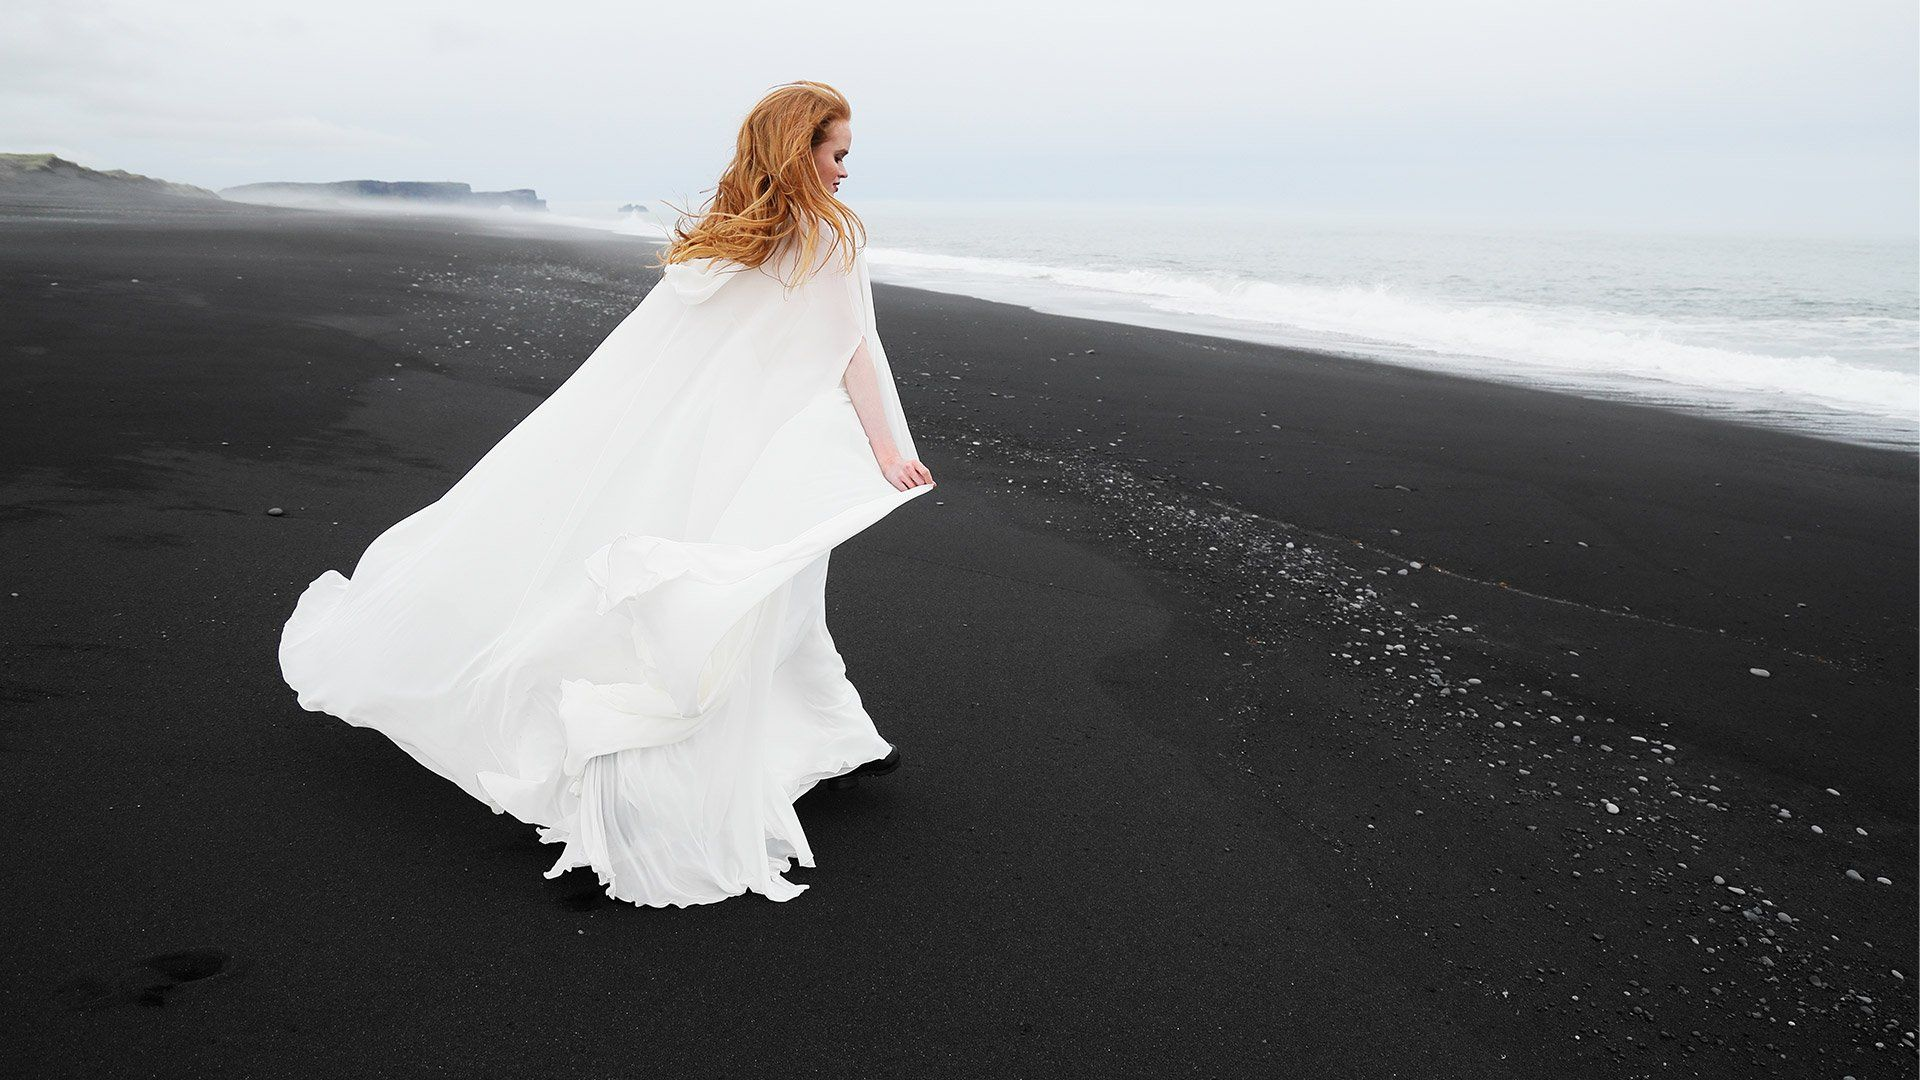 Female in wedding dress on Iceland beach shot using Canon EOS R and RF 24-105mm f/4L IS USM